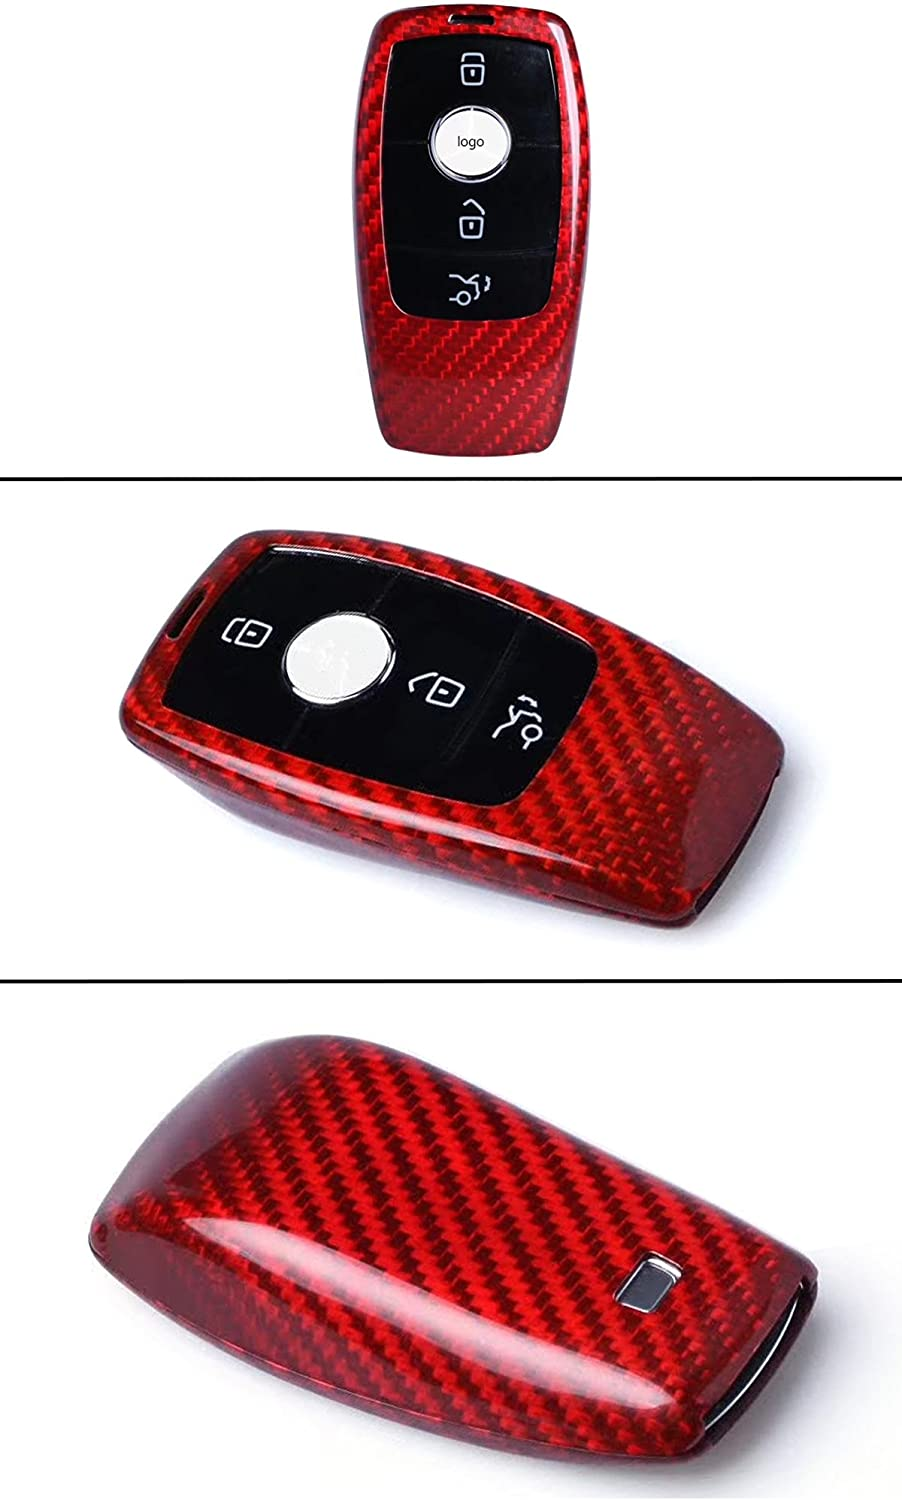 Cuztom Tuning RED Carbon Fiber CASE for 2017-2019 Mercedes Benz W213 E-Class E300 E43 E63 S-Class S63 S500 C-Class C63 W205 Smart Key FOB